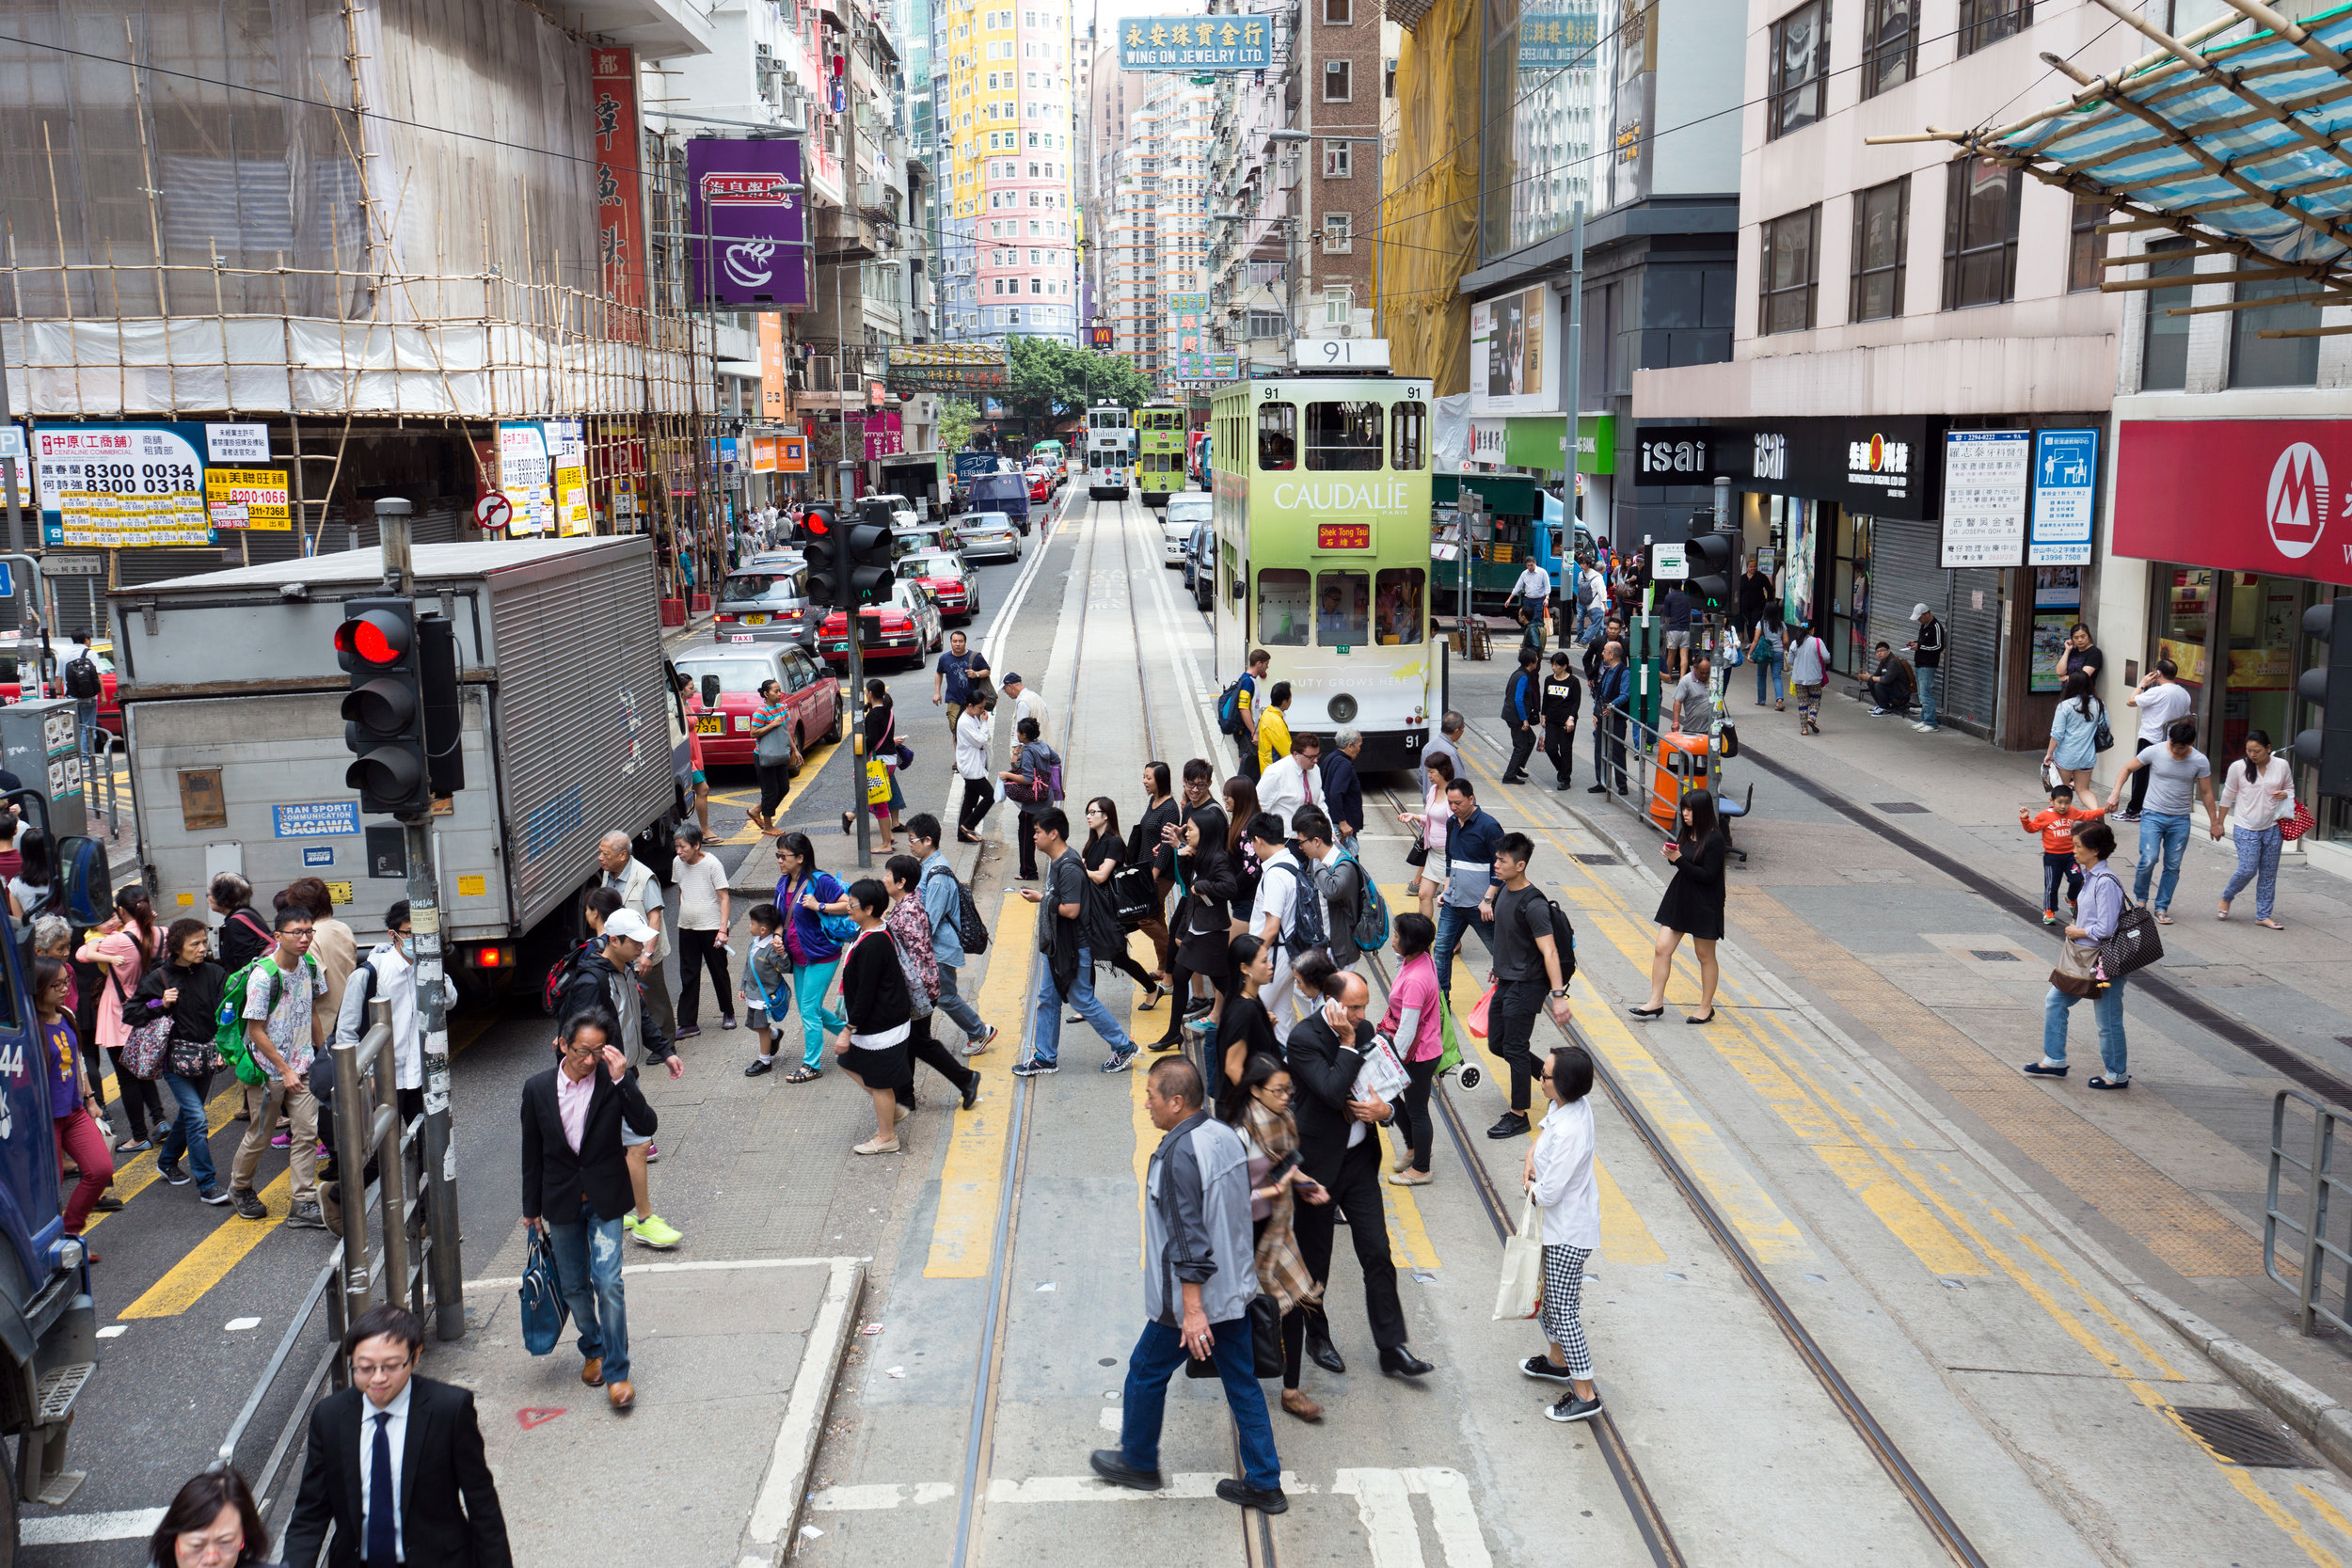 A busy street in Wan Chai Hong Kong with pedestrians and trams